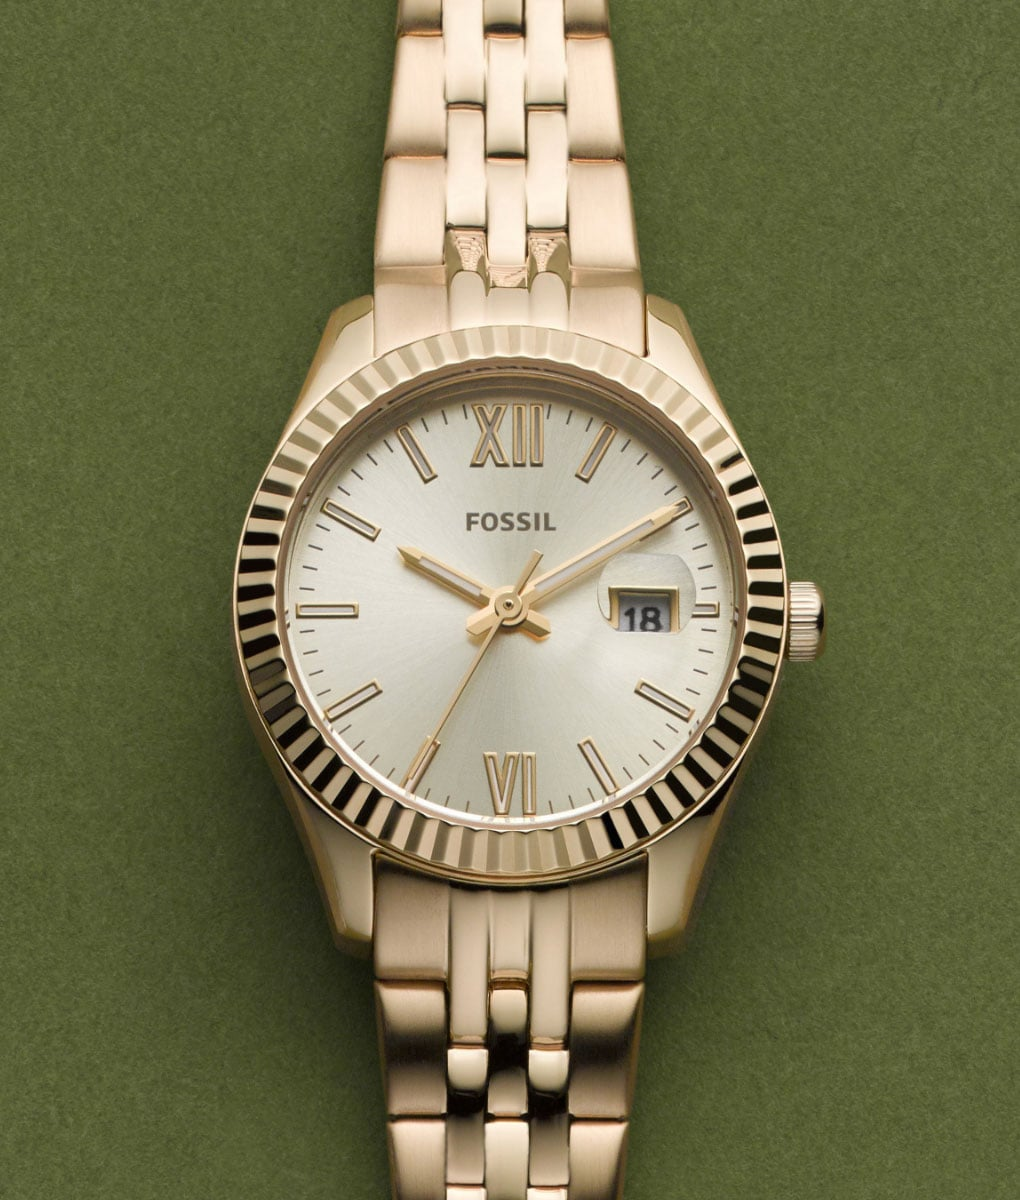 Women's gold-tone watch.